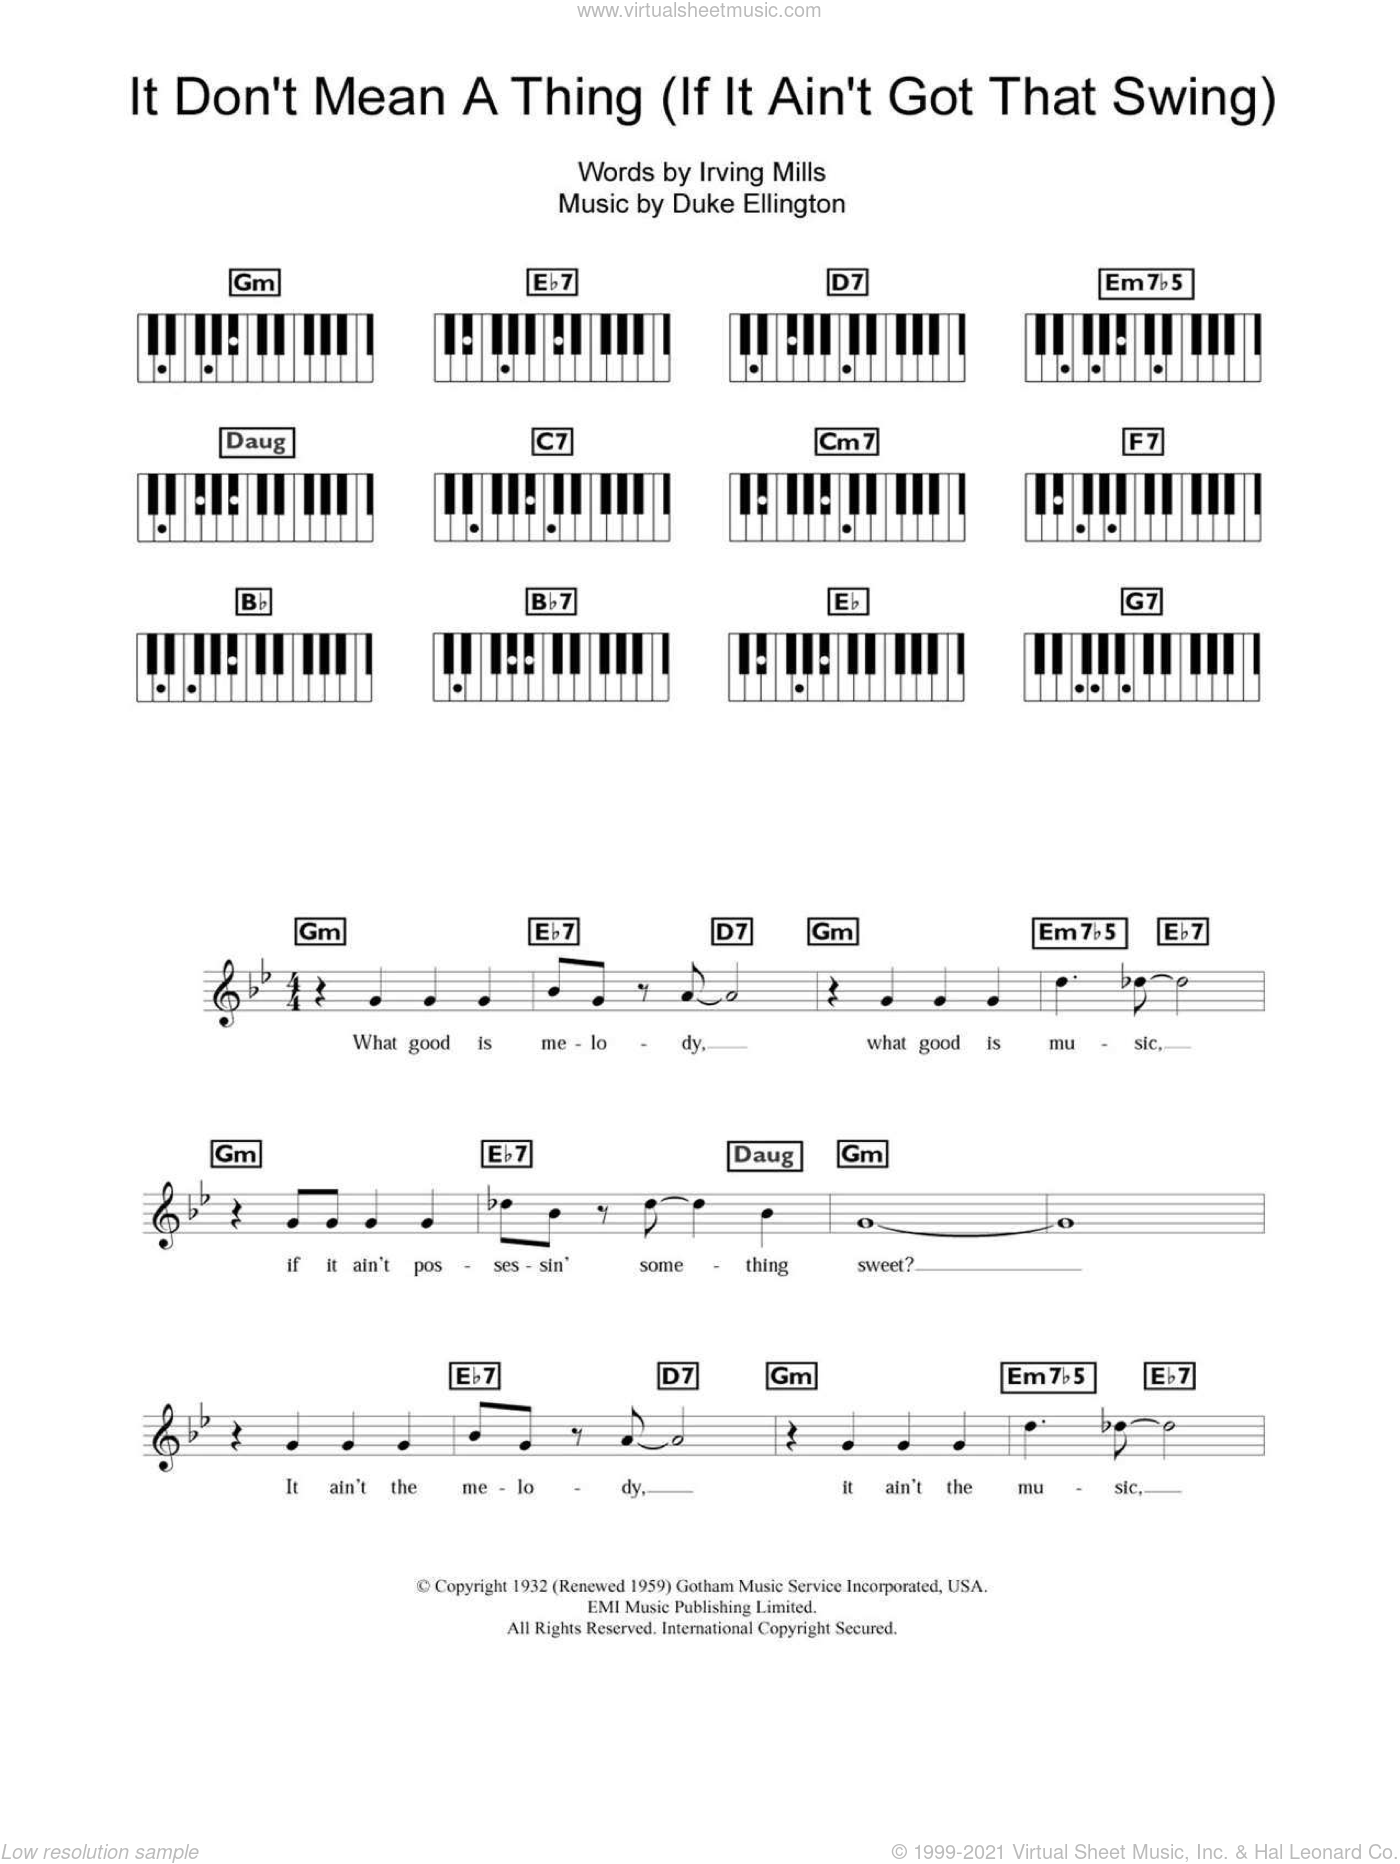 It Don't Mean A Thing (If It Ain't Got That Swing) sheet music for piano solo (chords, lyrics, melody) by Eva Cassidy, Duke Ellington and Irving Mills. Score Image Preview.